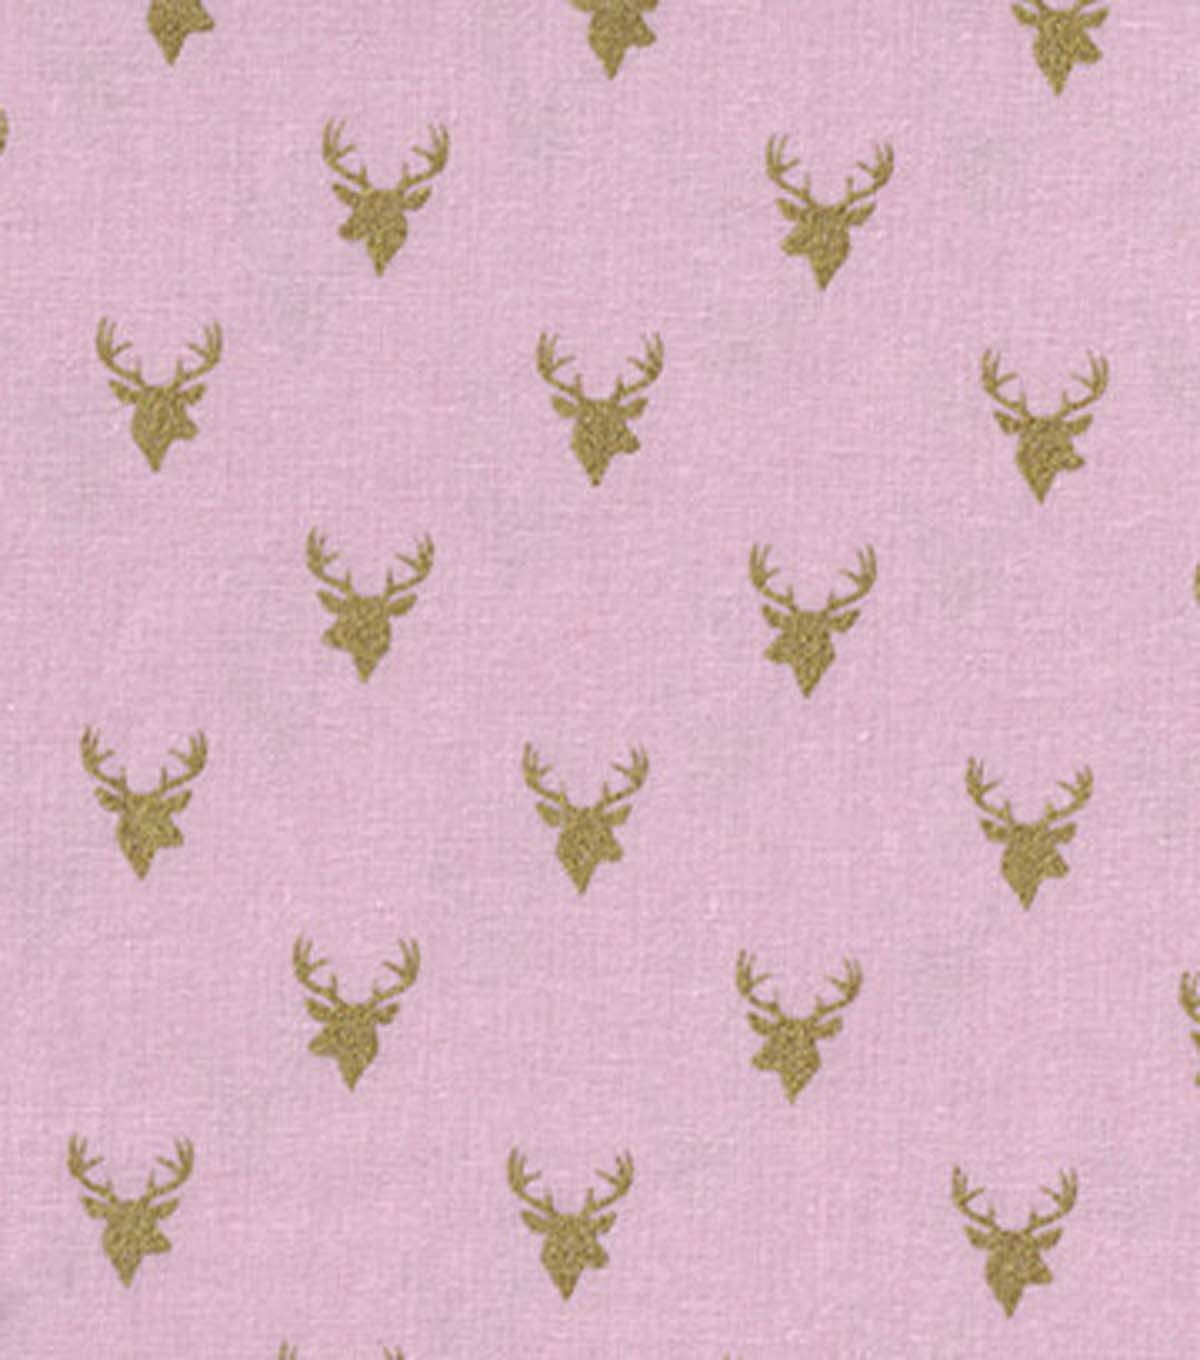 Keepsake Calico™ Cotton Fabric-Deer Heads On Pink With Gold Metallic